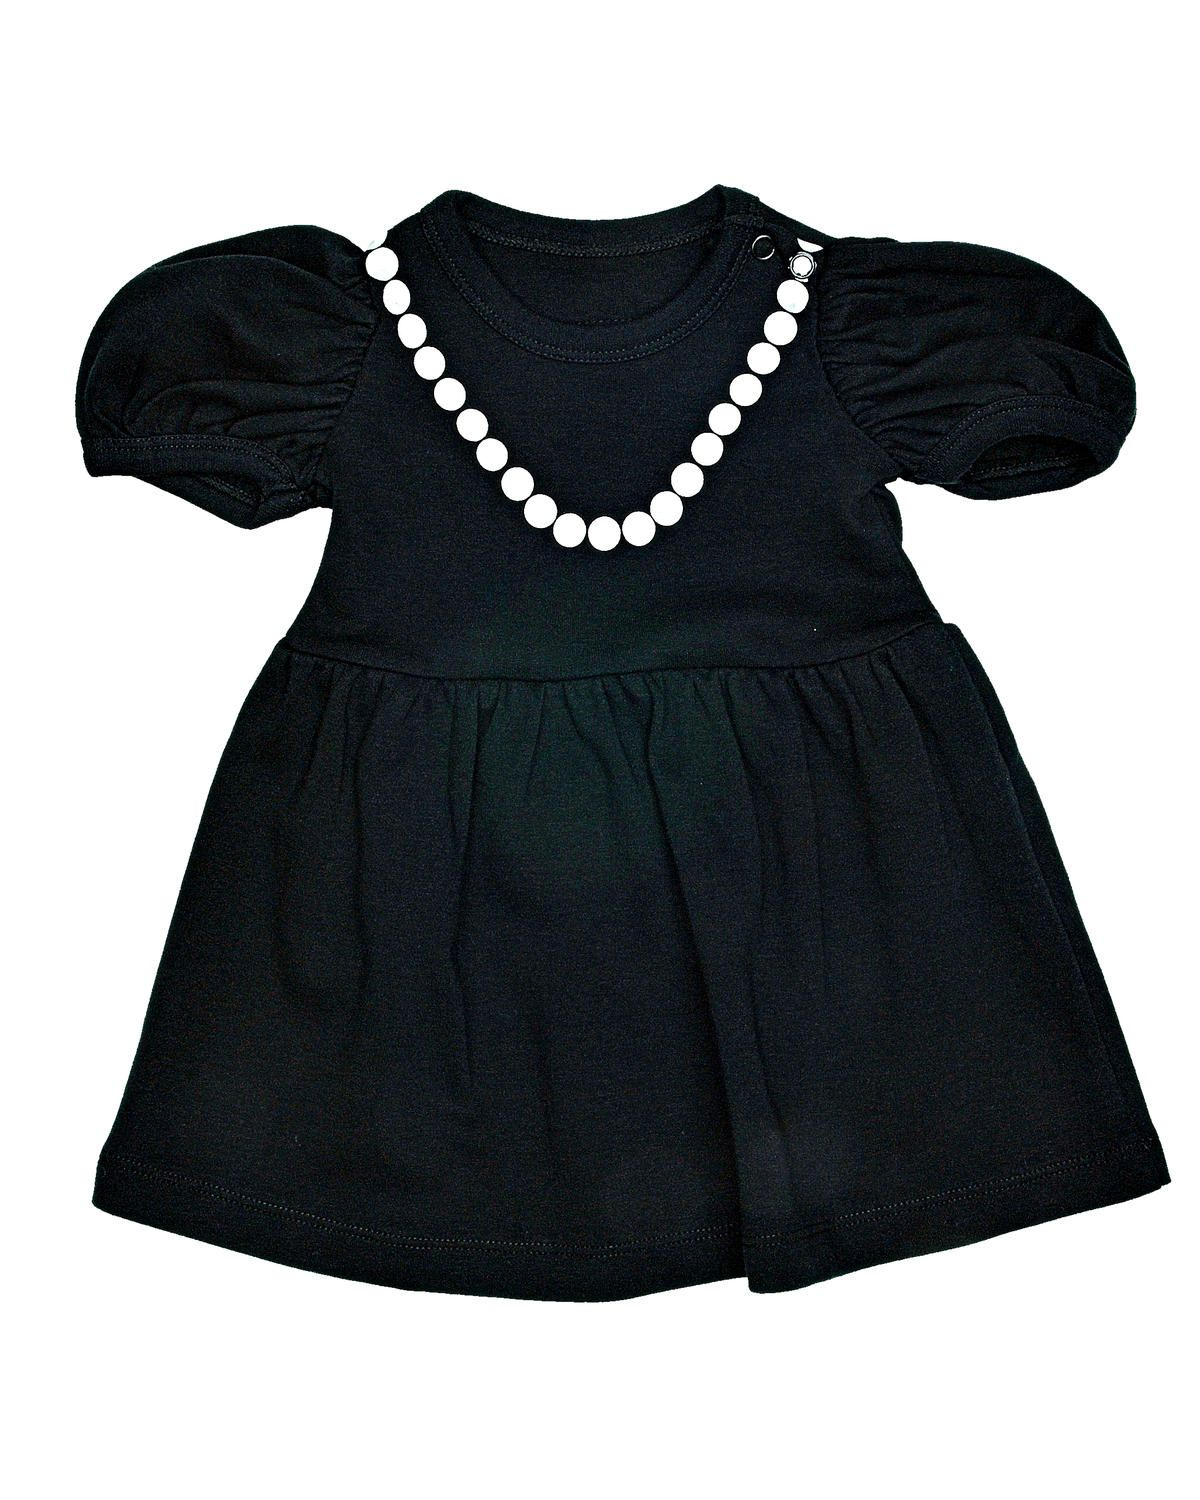 The Tiny Universe Dress The Quality Is 100 Cotton Kids Fashion